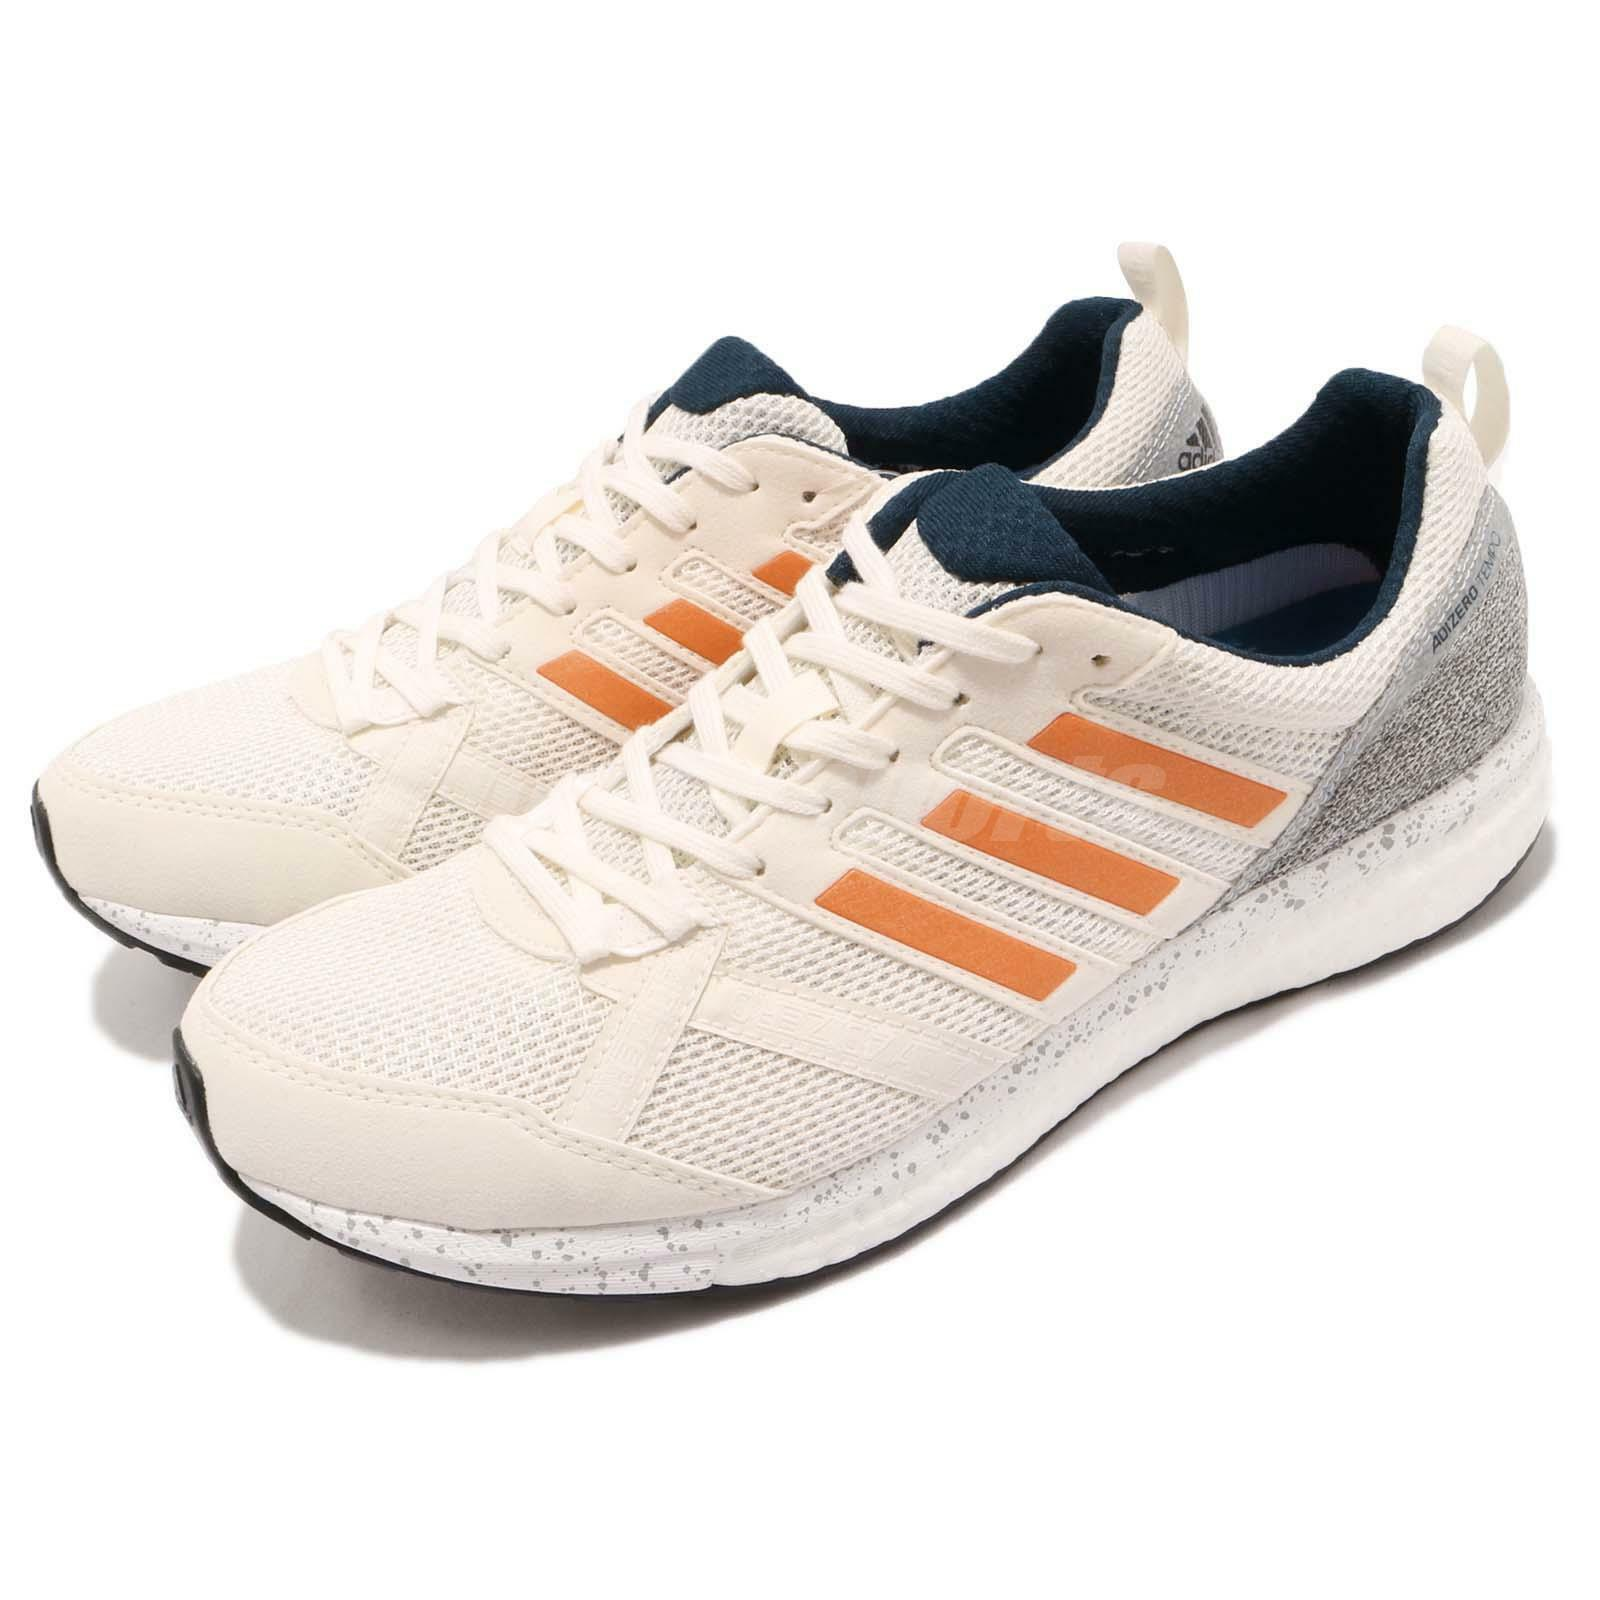 Adidas Adizero Tempo 9 9 9 M Boost Off White Hi Res orange Men Running shoes BB6433 59a953